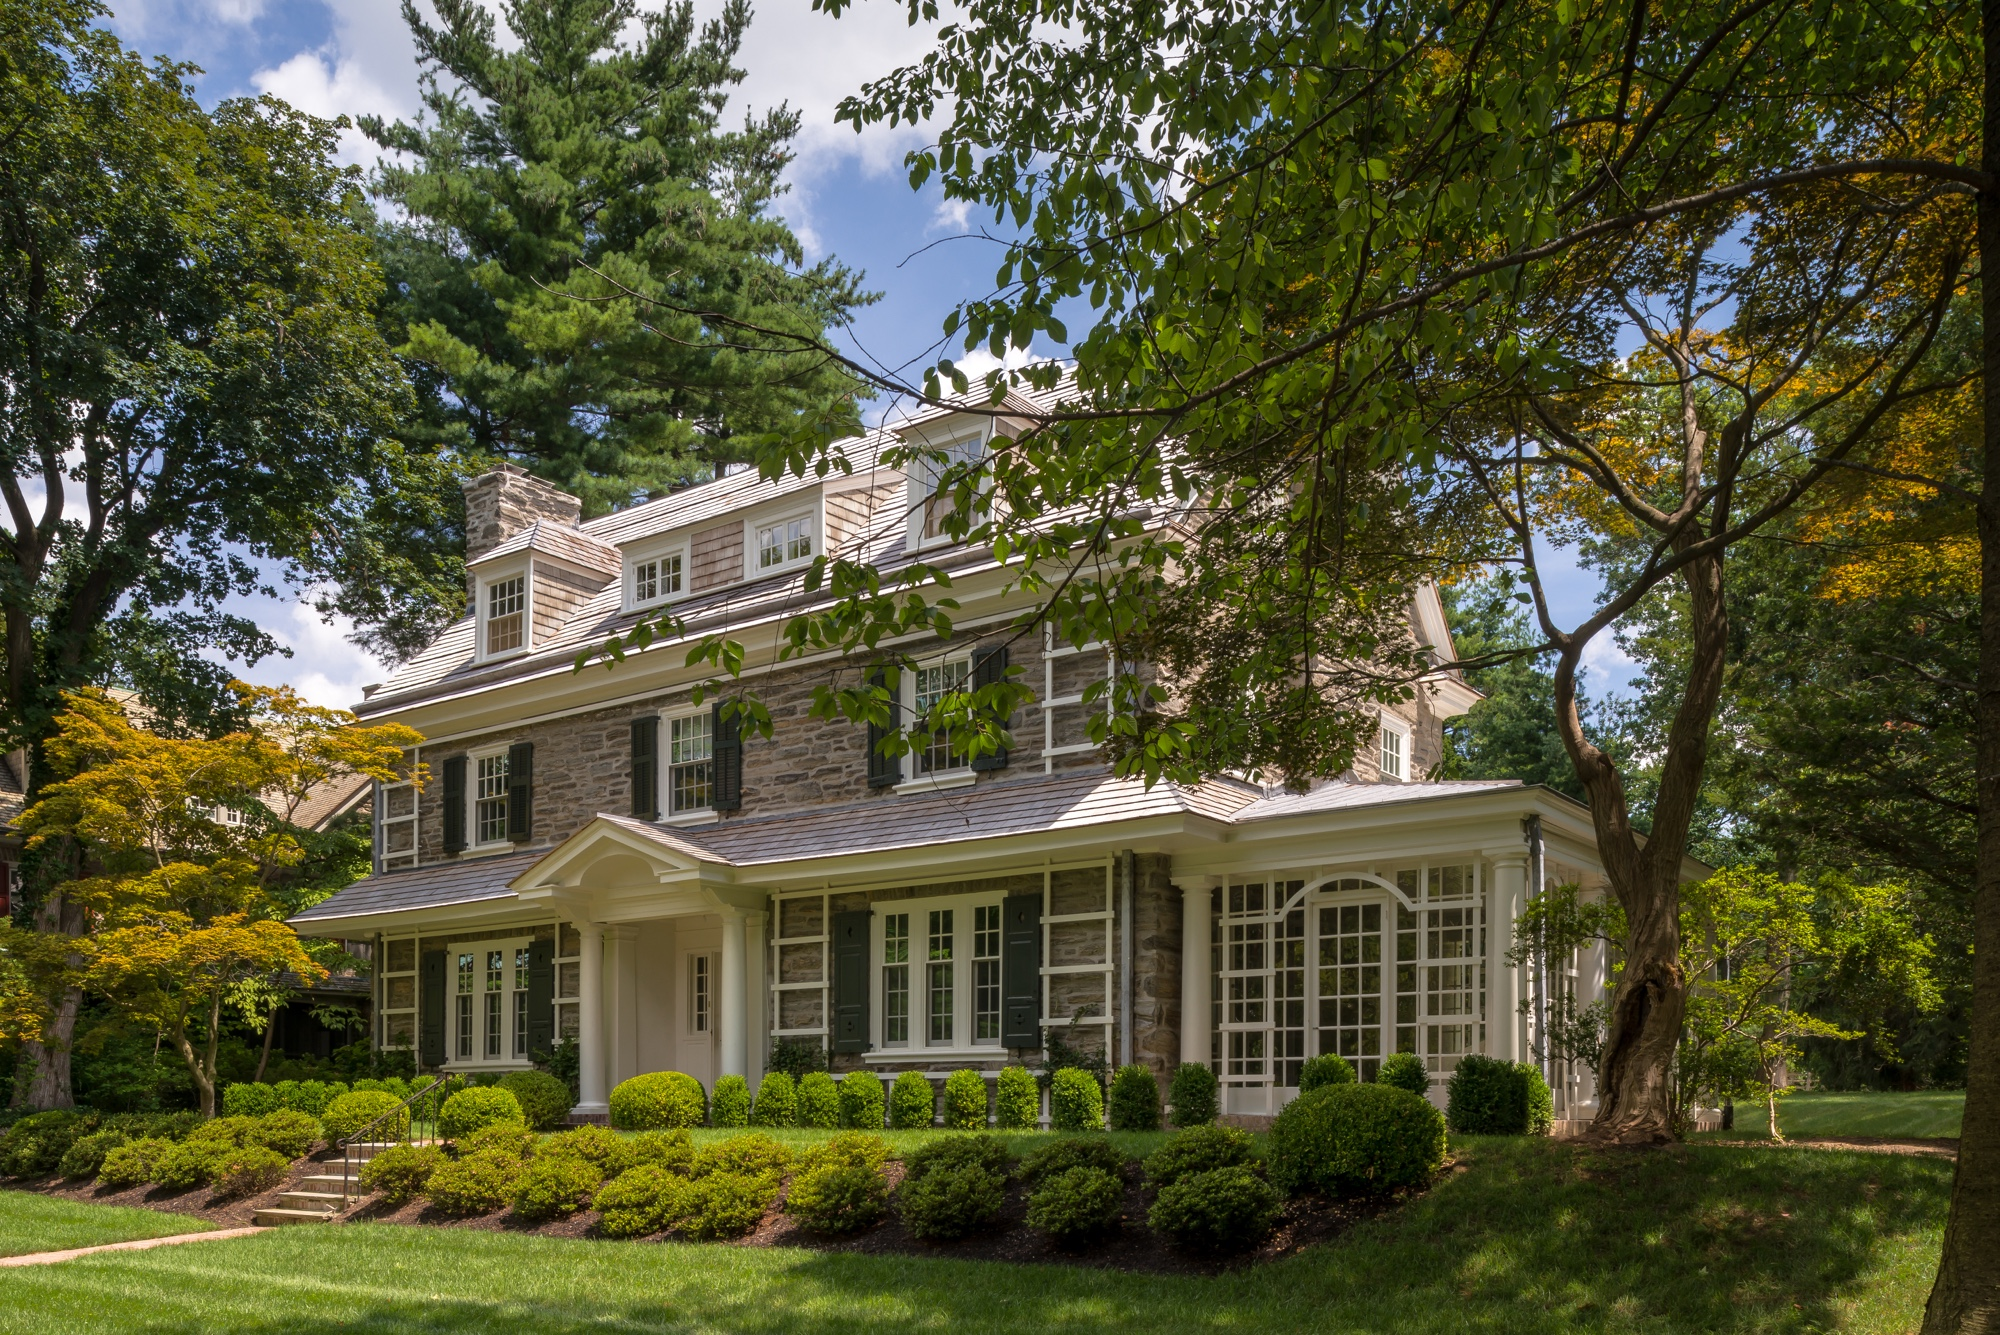 Chestnut Hill Residence Period Architecture Ltd